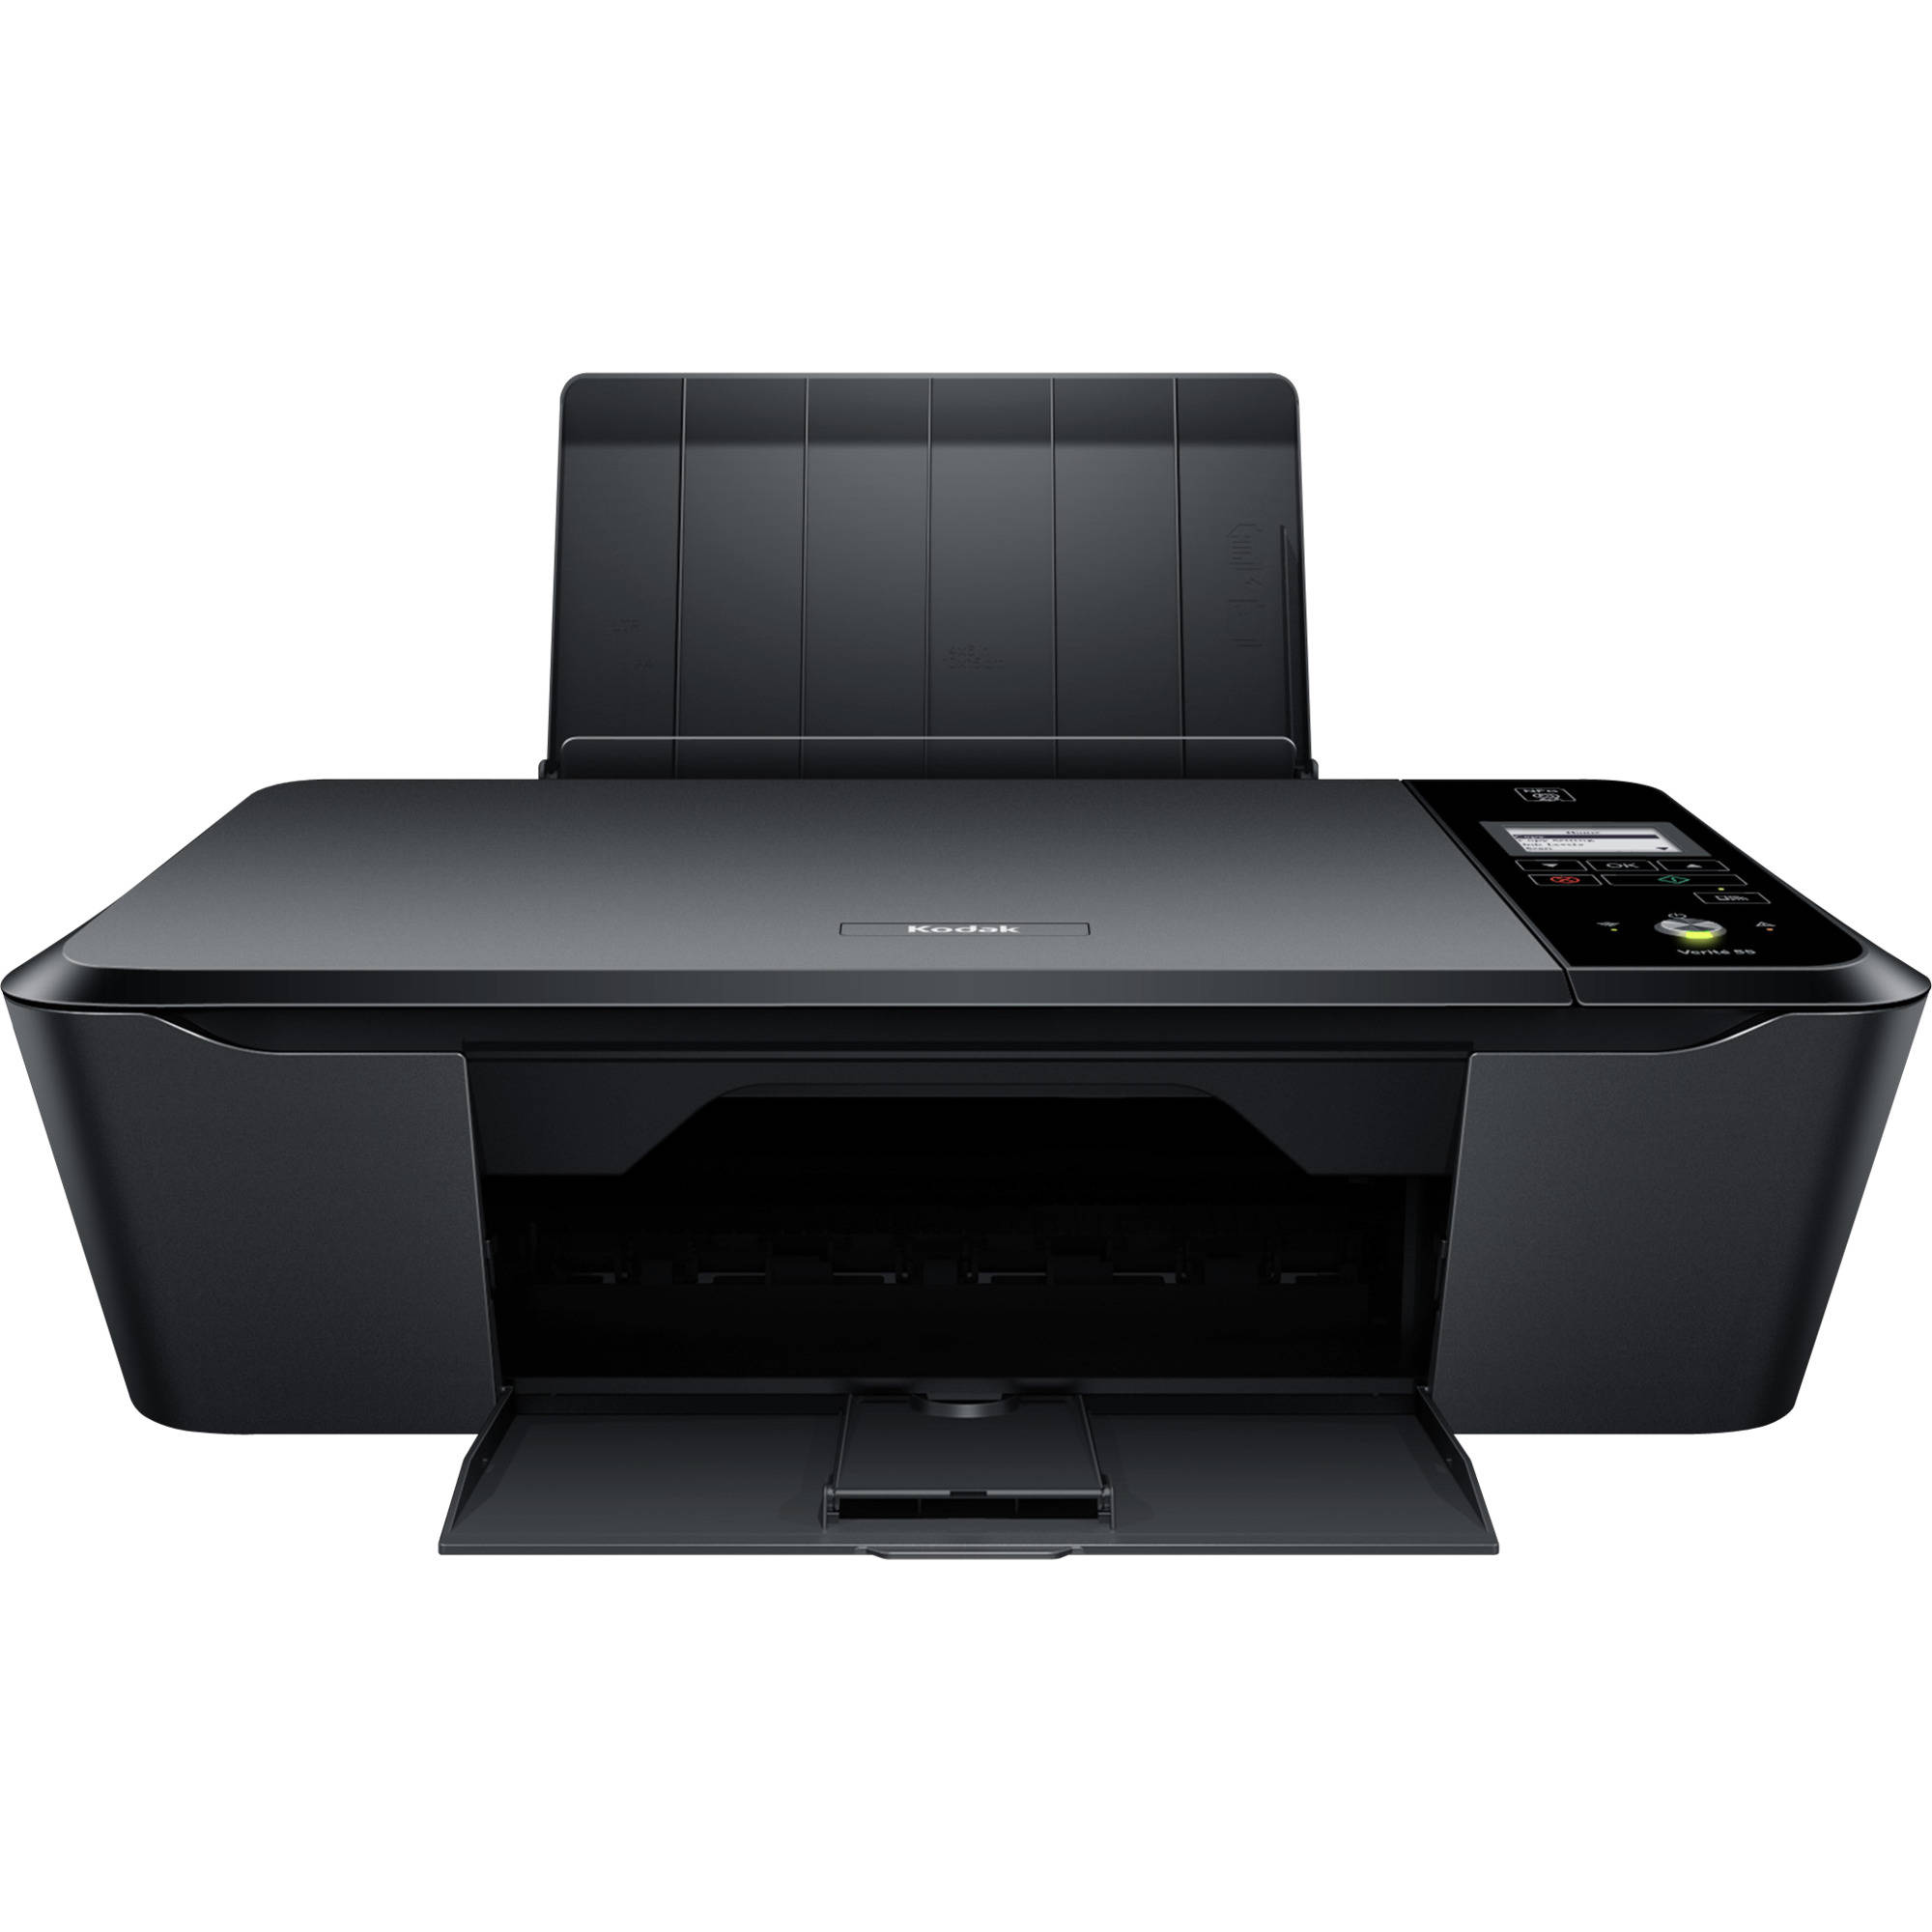 KODAK Verite 55 Wireless All In One Printer